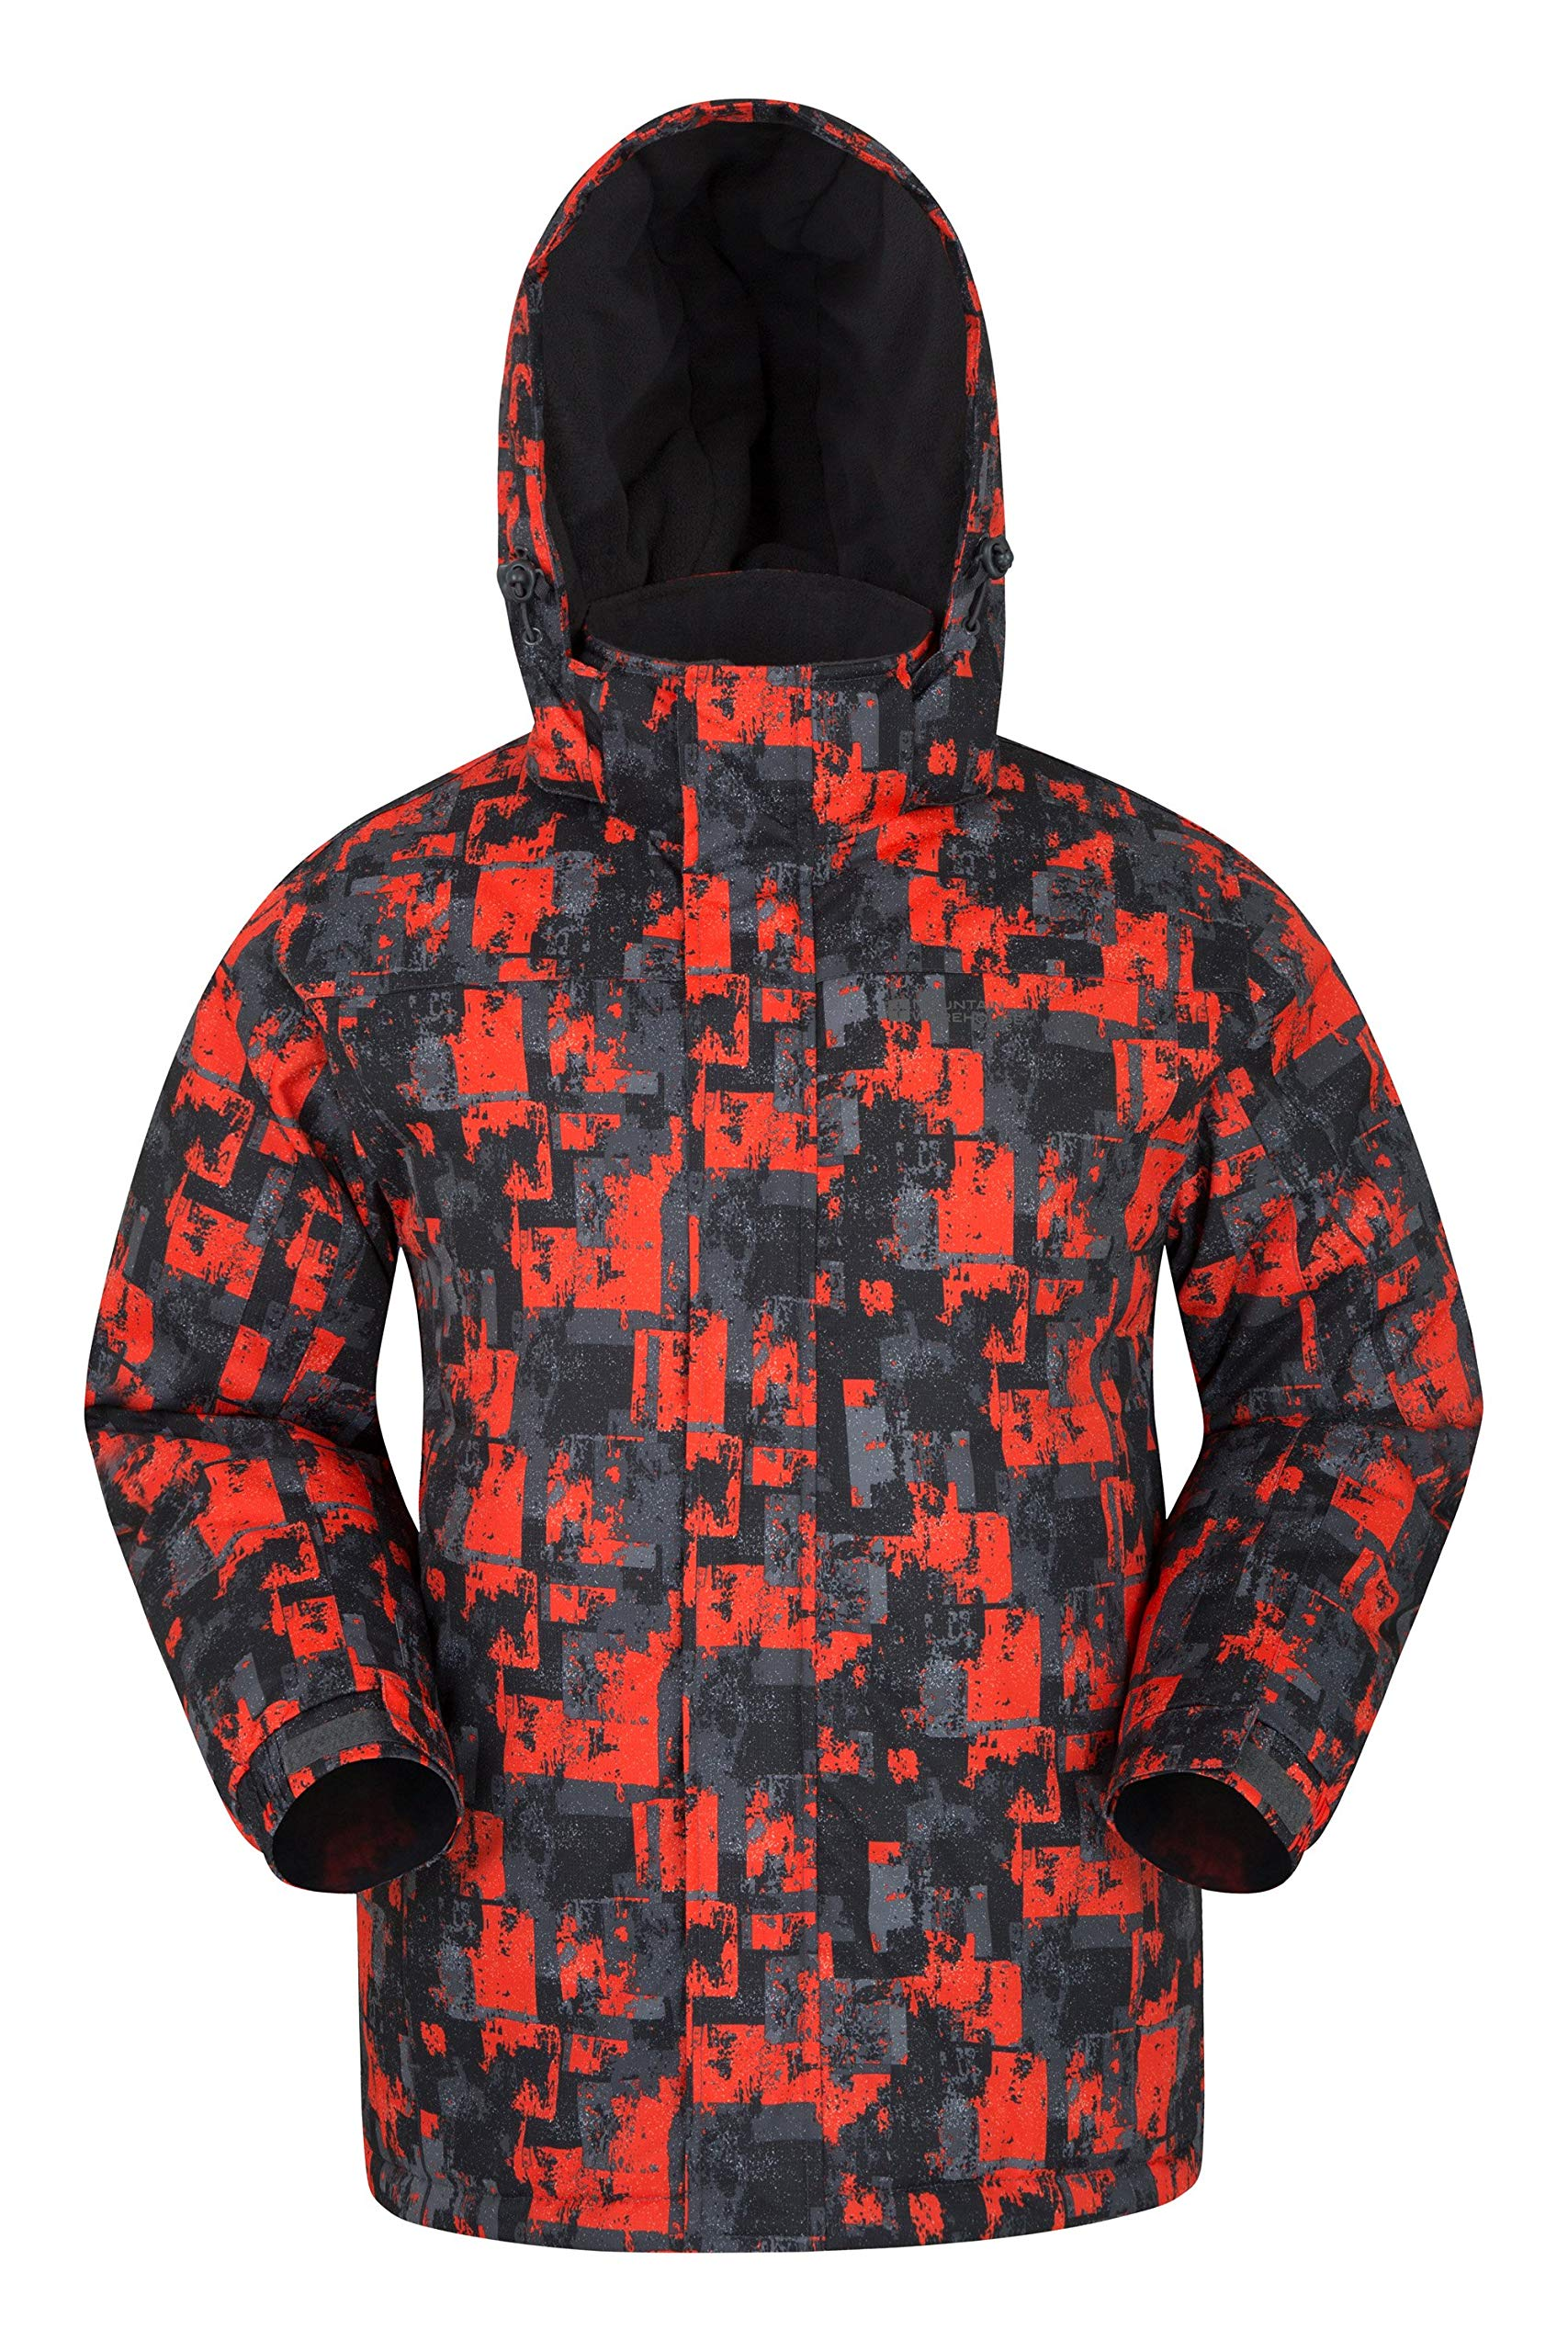 Mountain Warehouse Shadow Printed Jacket